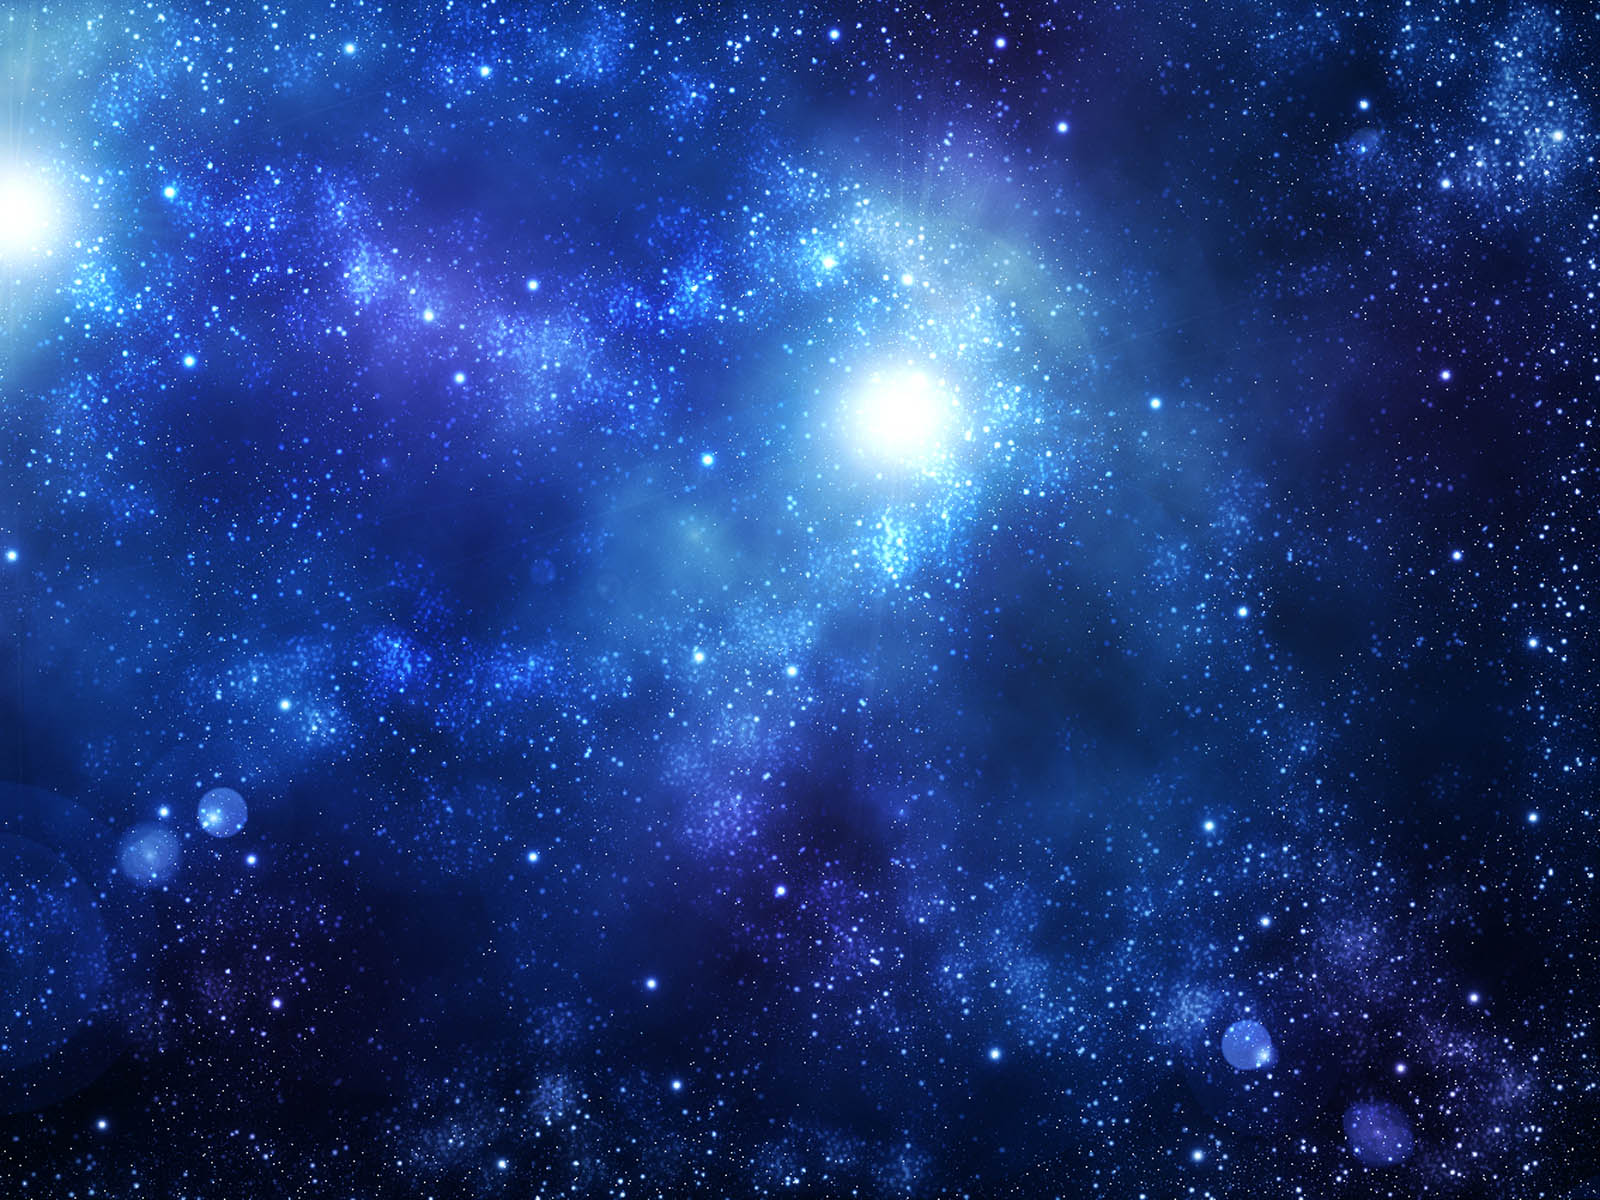 galaxies live wallpaper for laptops - photo #13